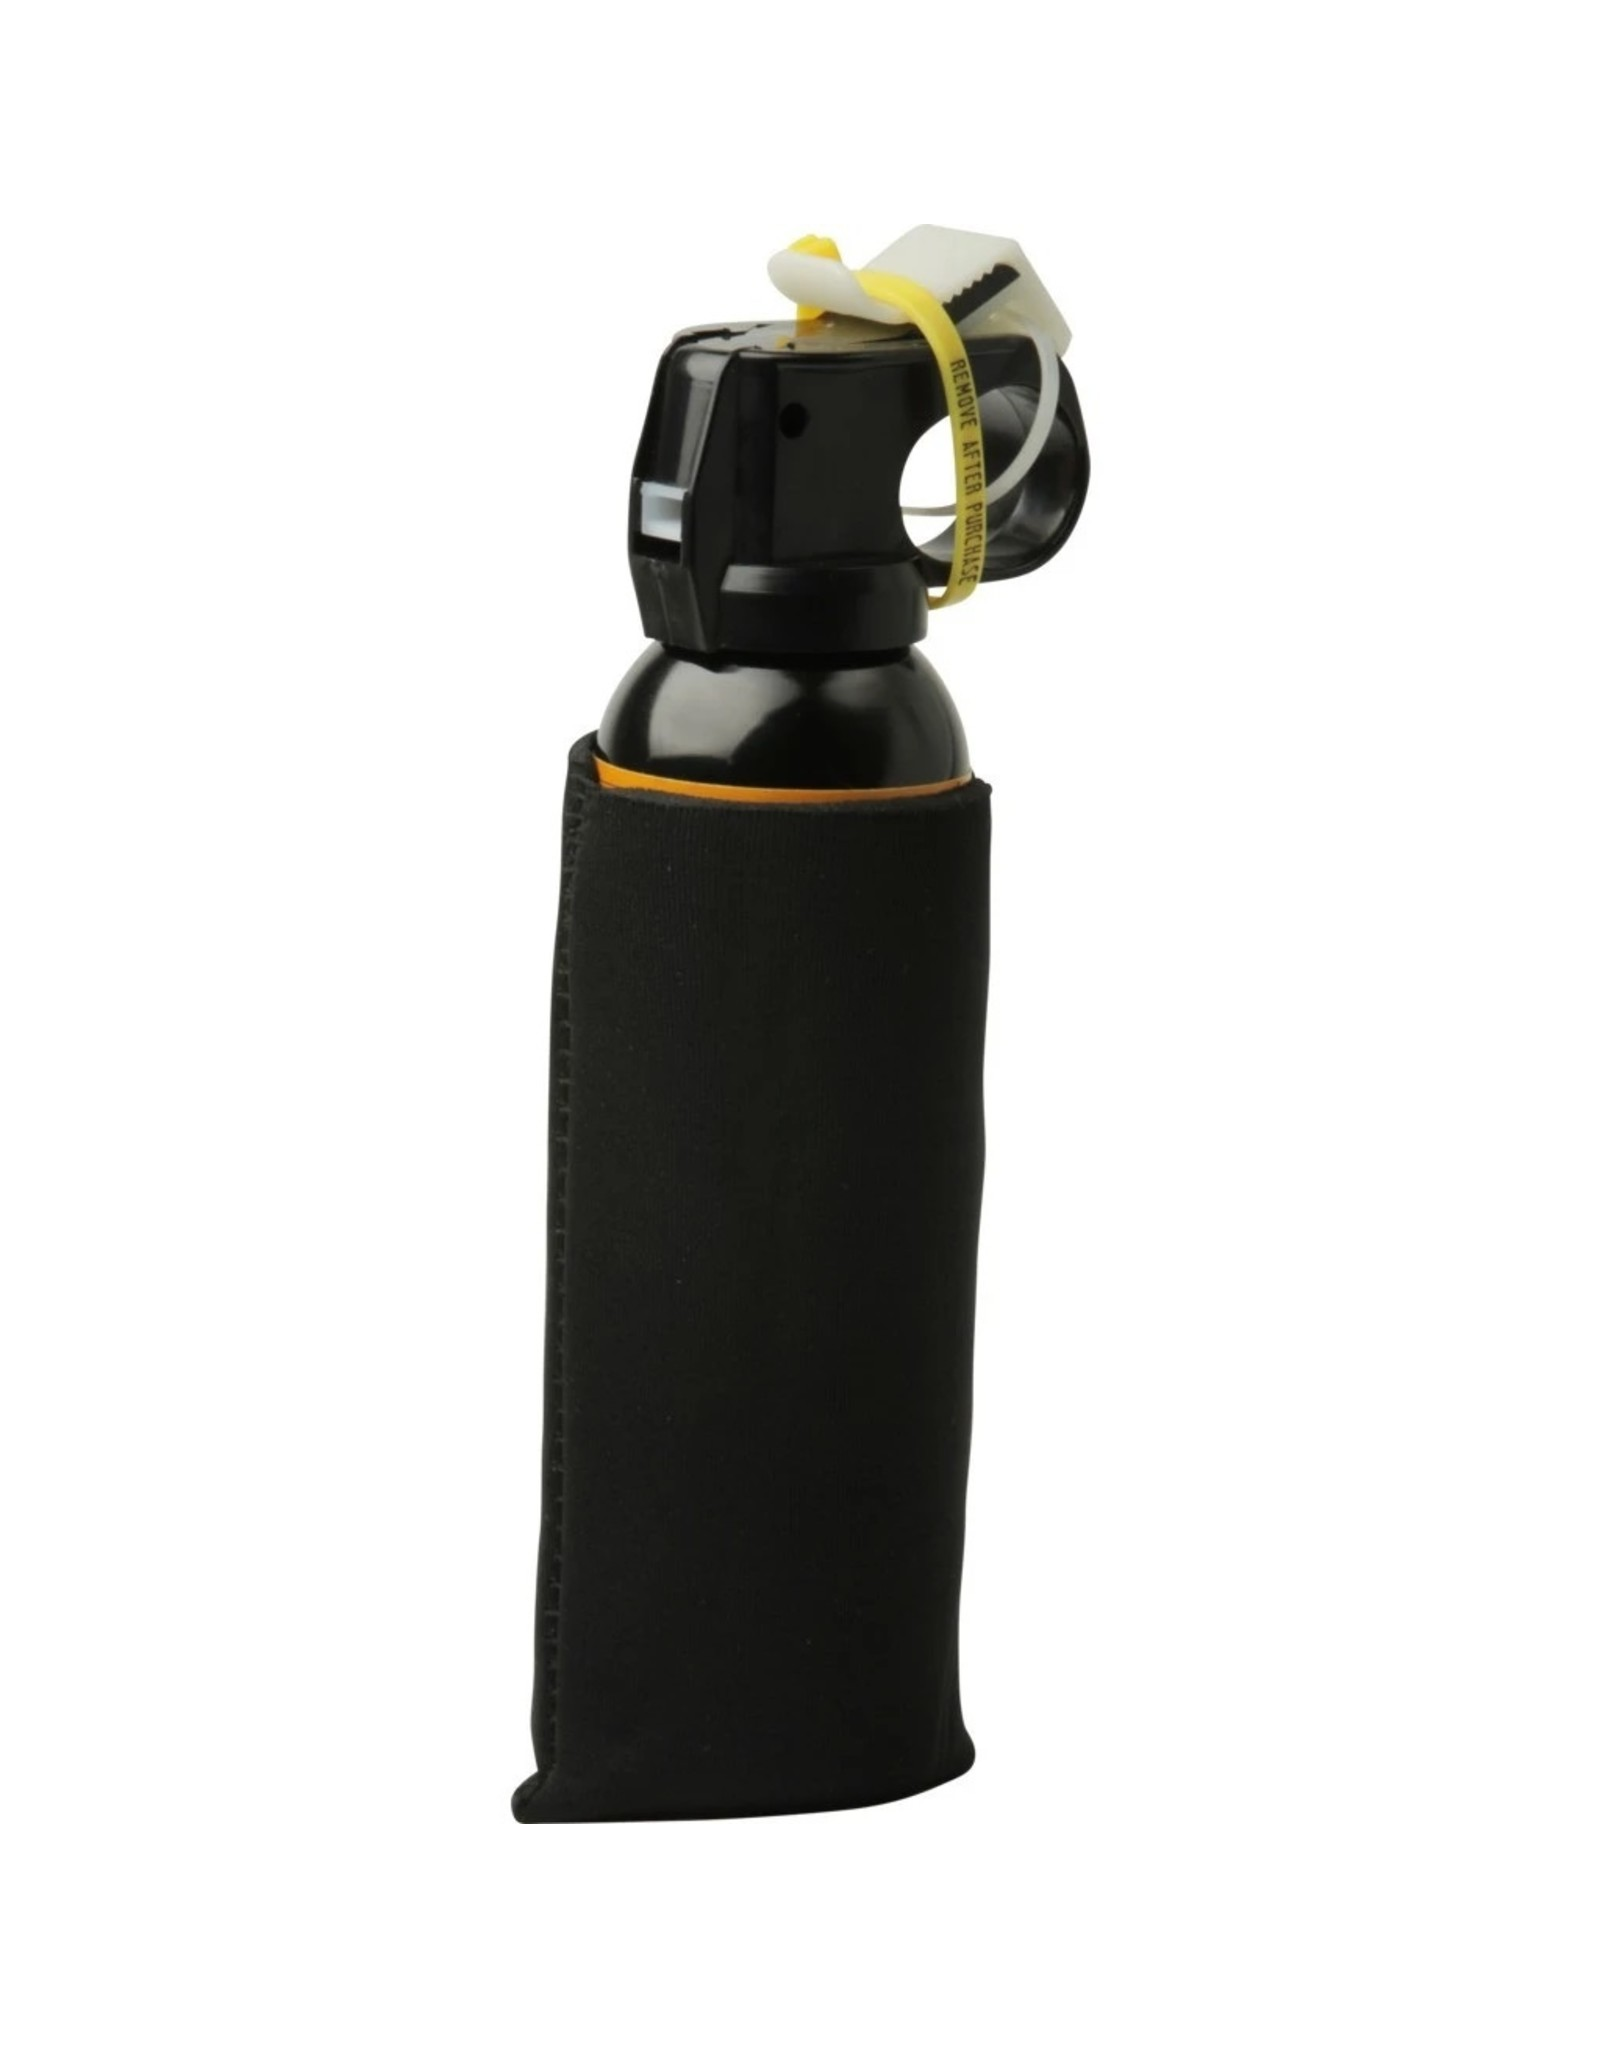 WORLD FAMOUS SALES BEAR SPRAY HOLSTER FOR 225G CAN